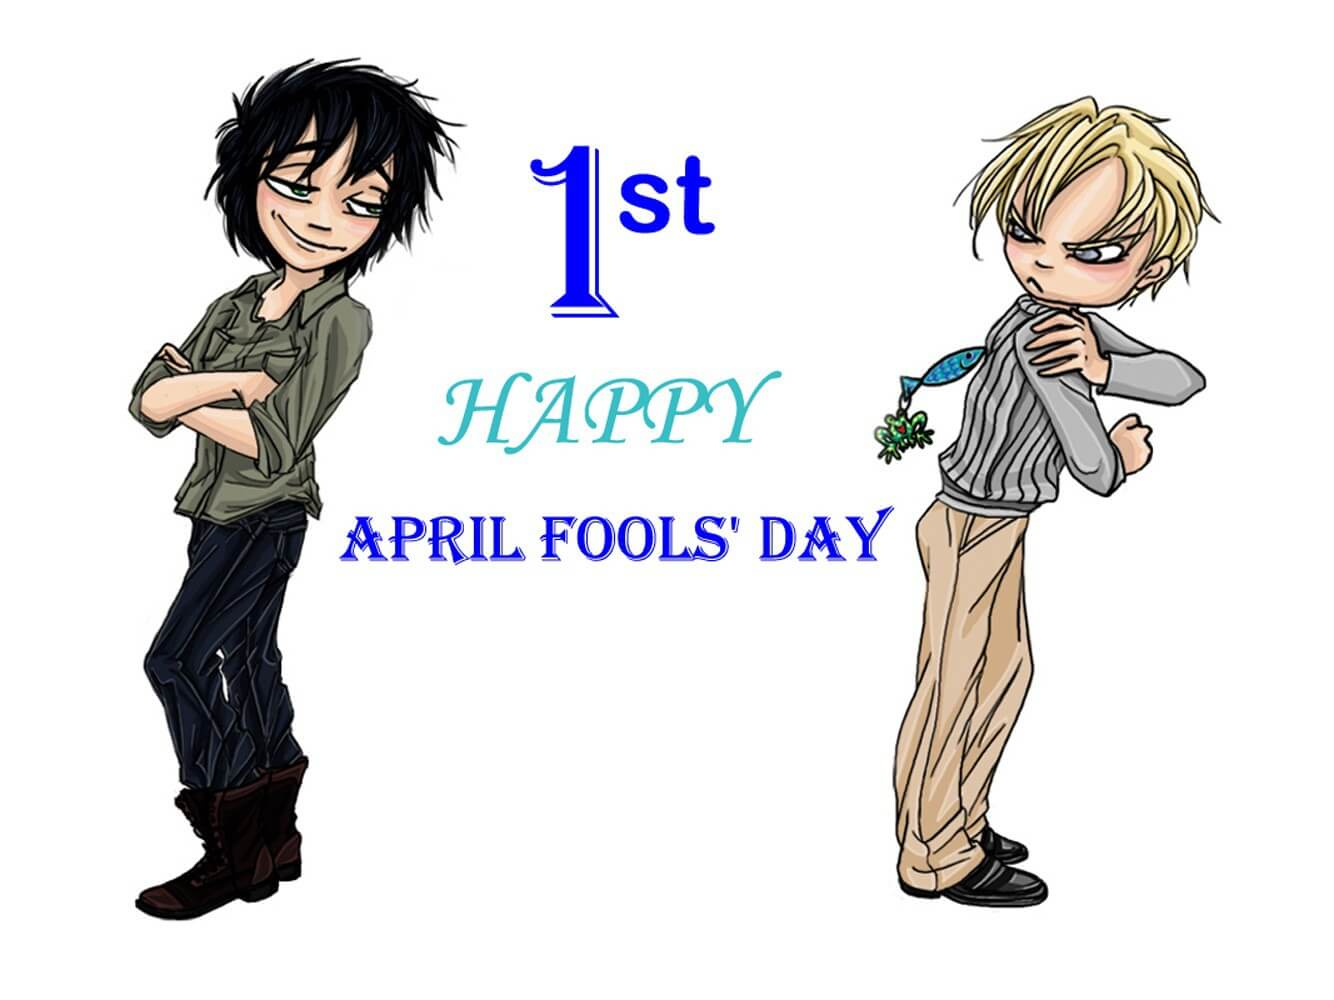 april fools day wallpaper hd free download